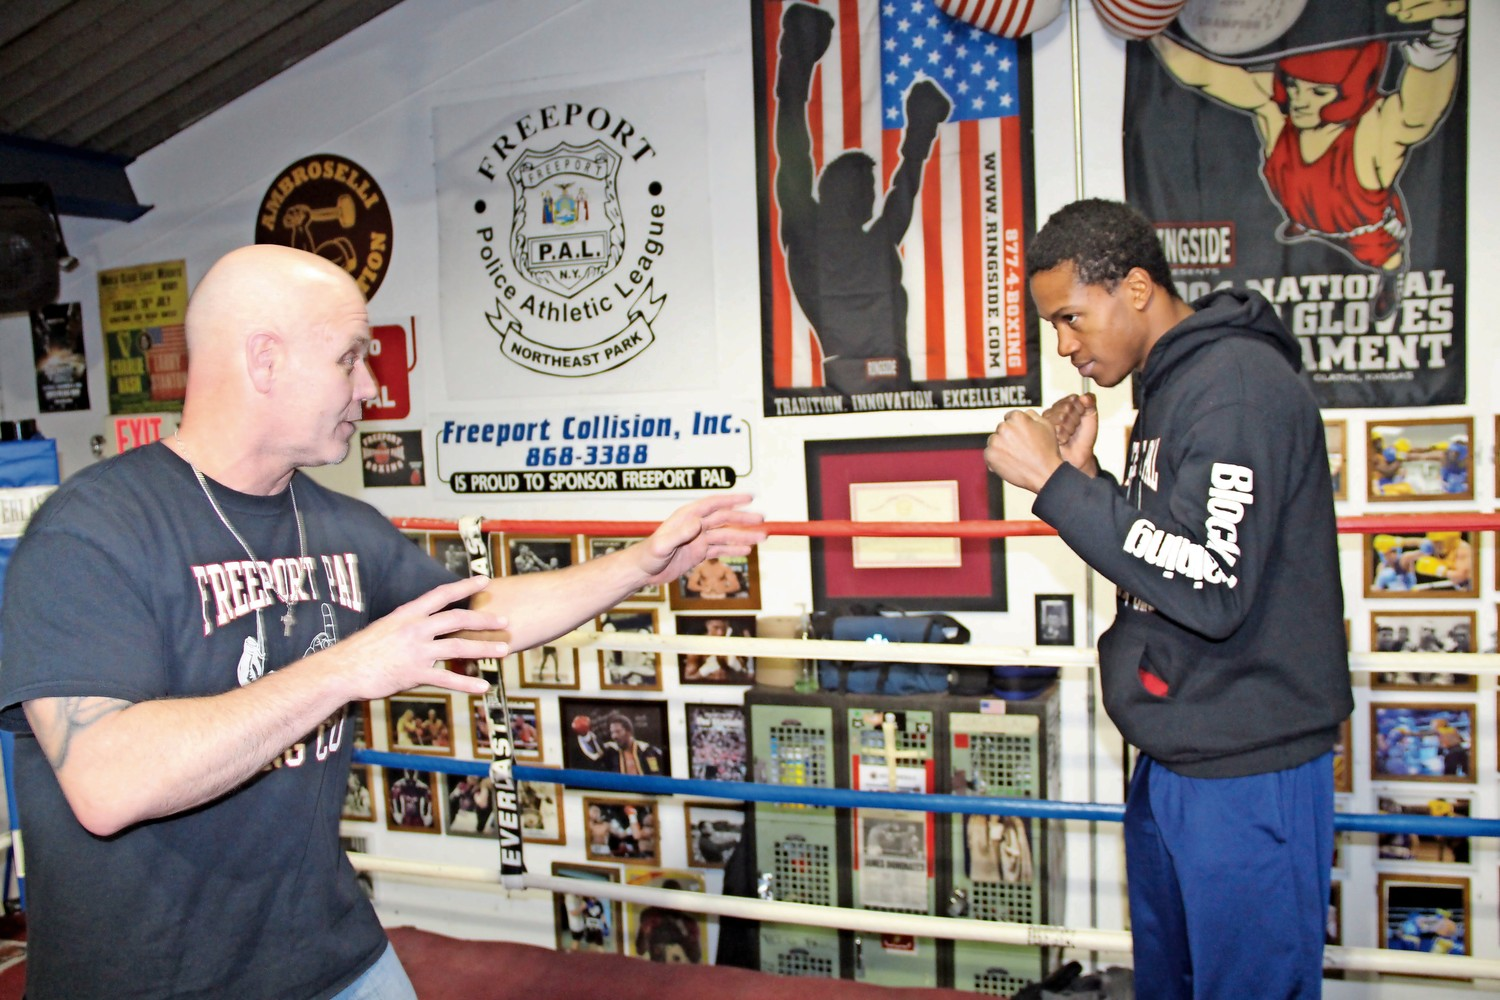 Joe Higgins, left, a Freeport Athletic League boxing coach, and boxer Patrick Day sparred playfully in the ring on Tuesday.